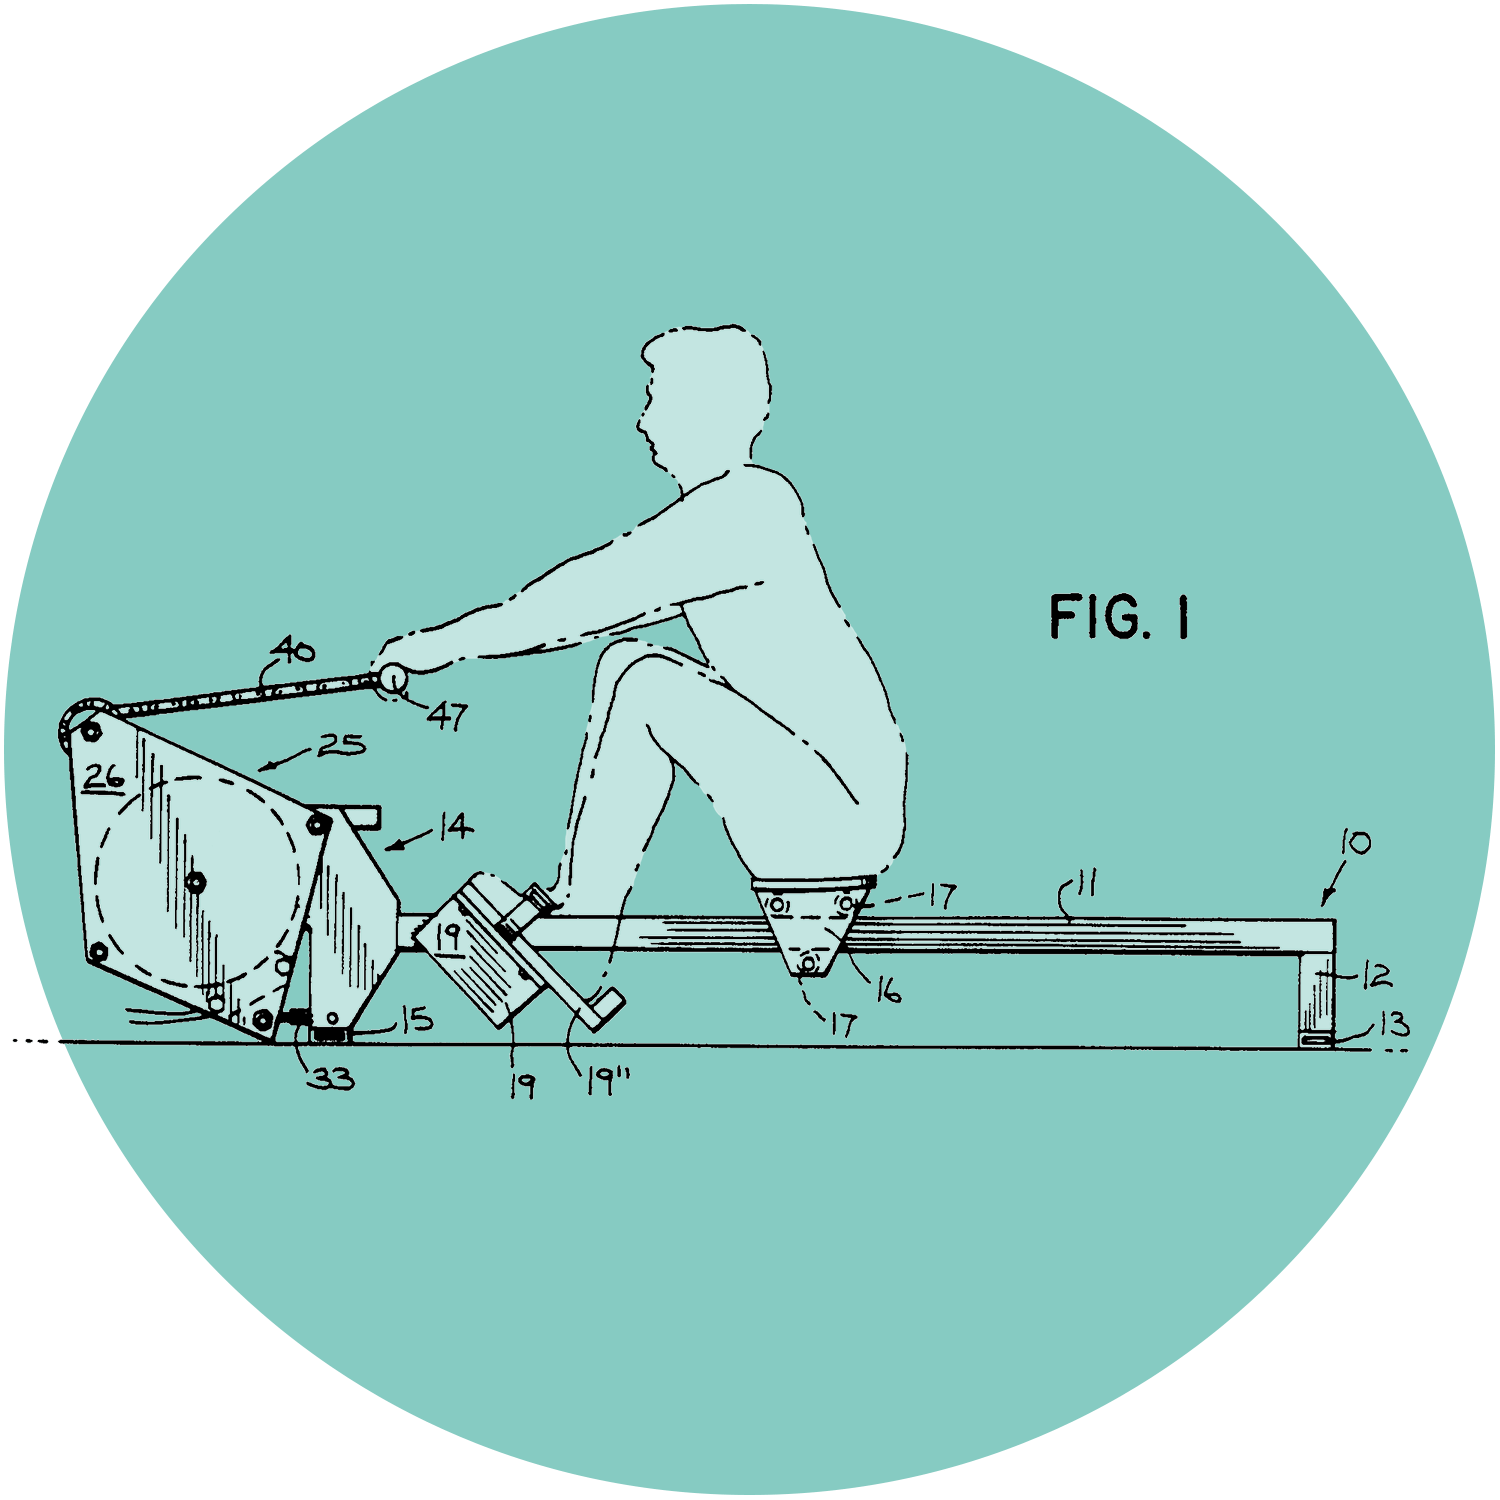 Rowing Machine // PerfectXL Spreadsheet Validation